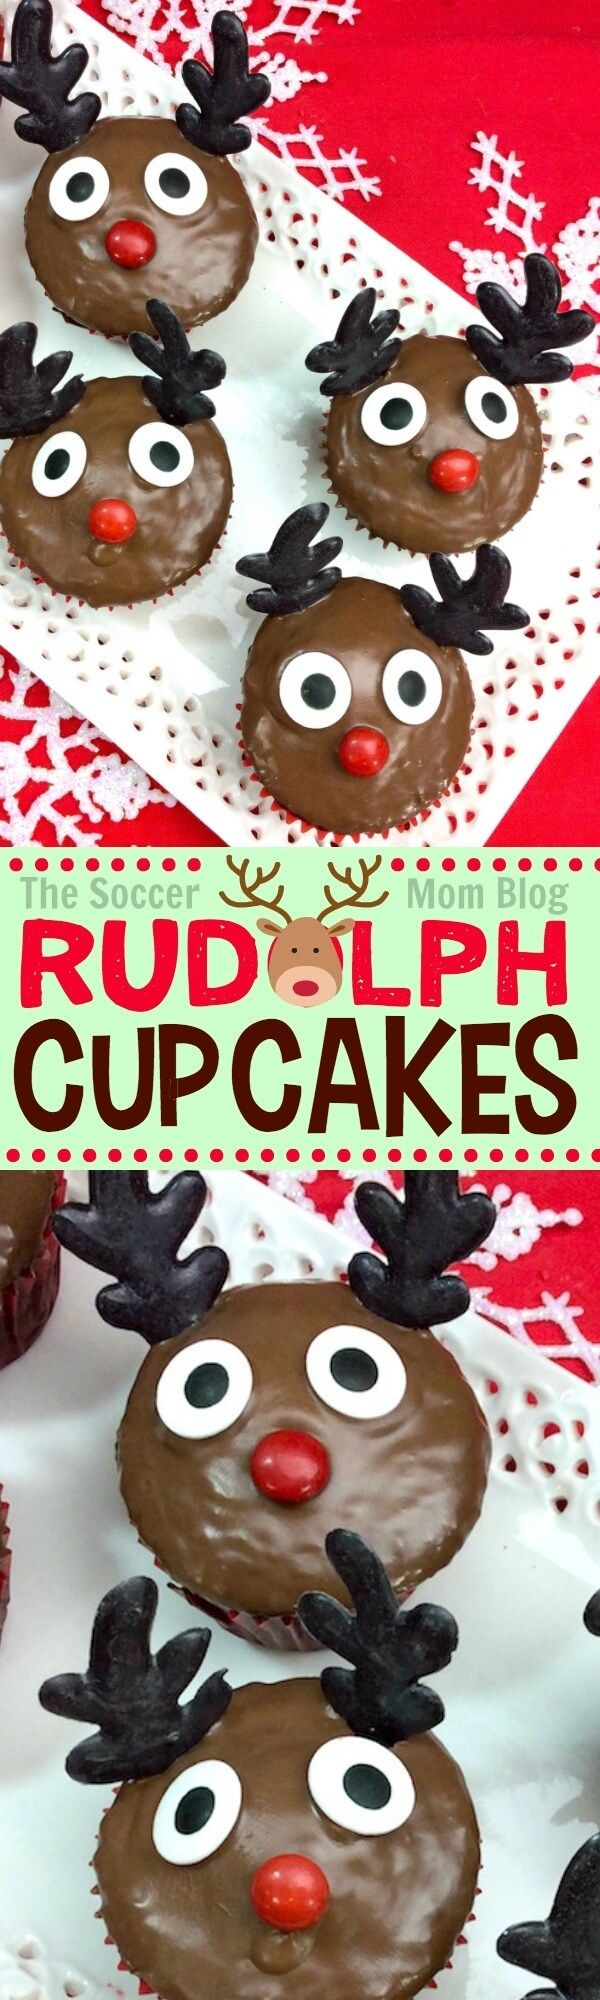 Quirky & cute Rudolph Cupcakes are easy to make and will be the star of this year's Christmas party! Fun to make kids holiday dessert recipe. #Christmas #cupcakes via @https://www.pinterest.com/soccermomblog